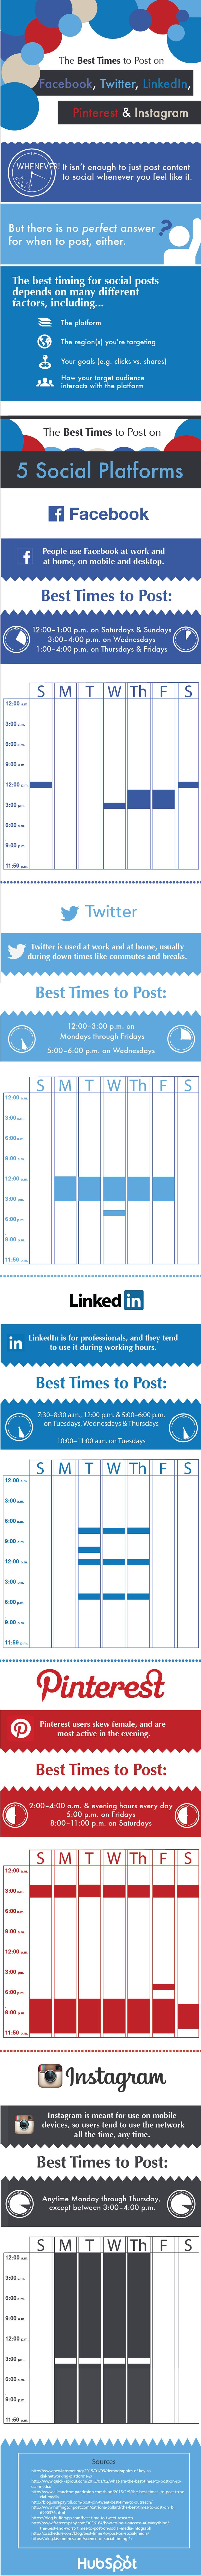 The Best Times to Post on Facebook, Twitter, LinkedIn & Other Social Media Sites [Infographic]